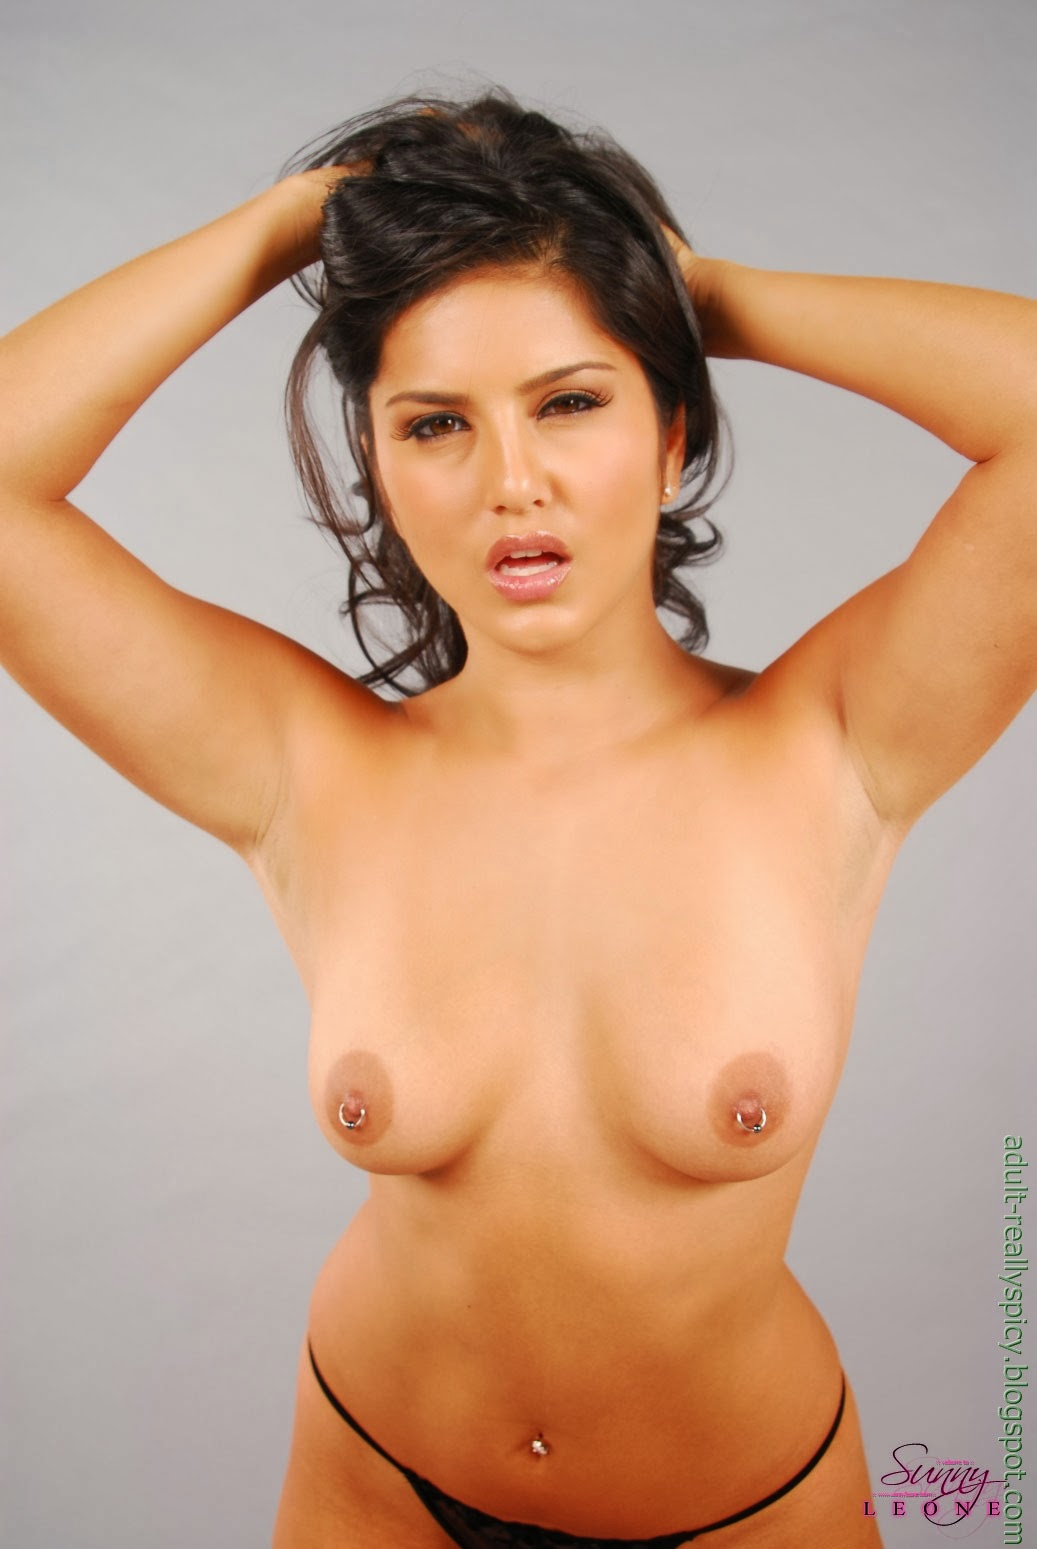 Best Of Sunny Leone Porn